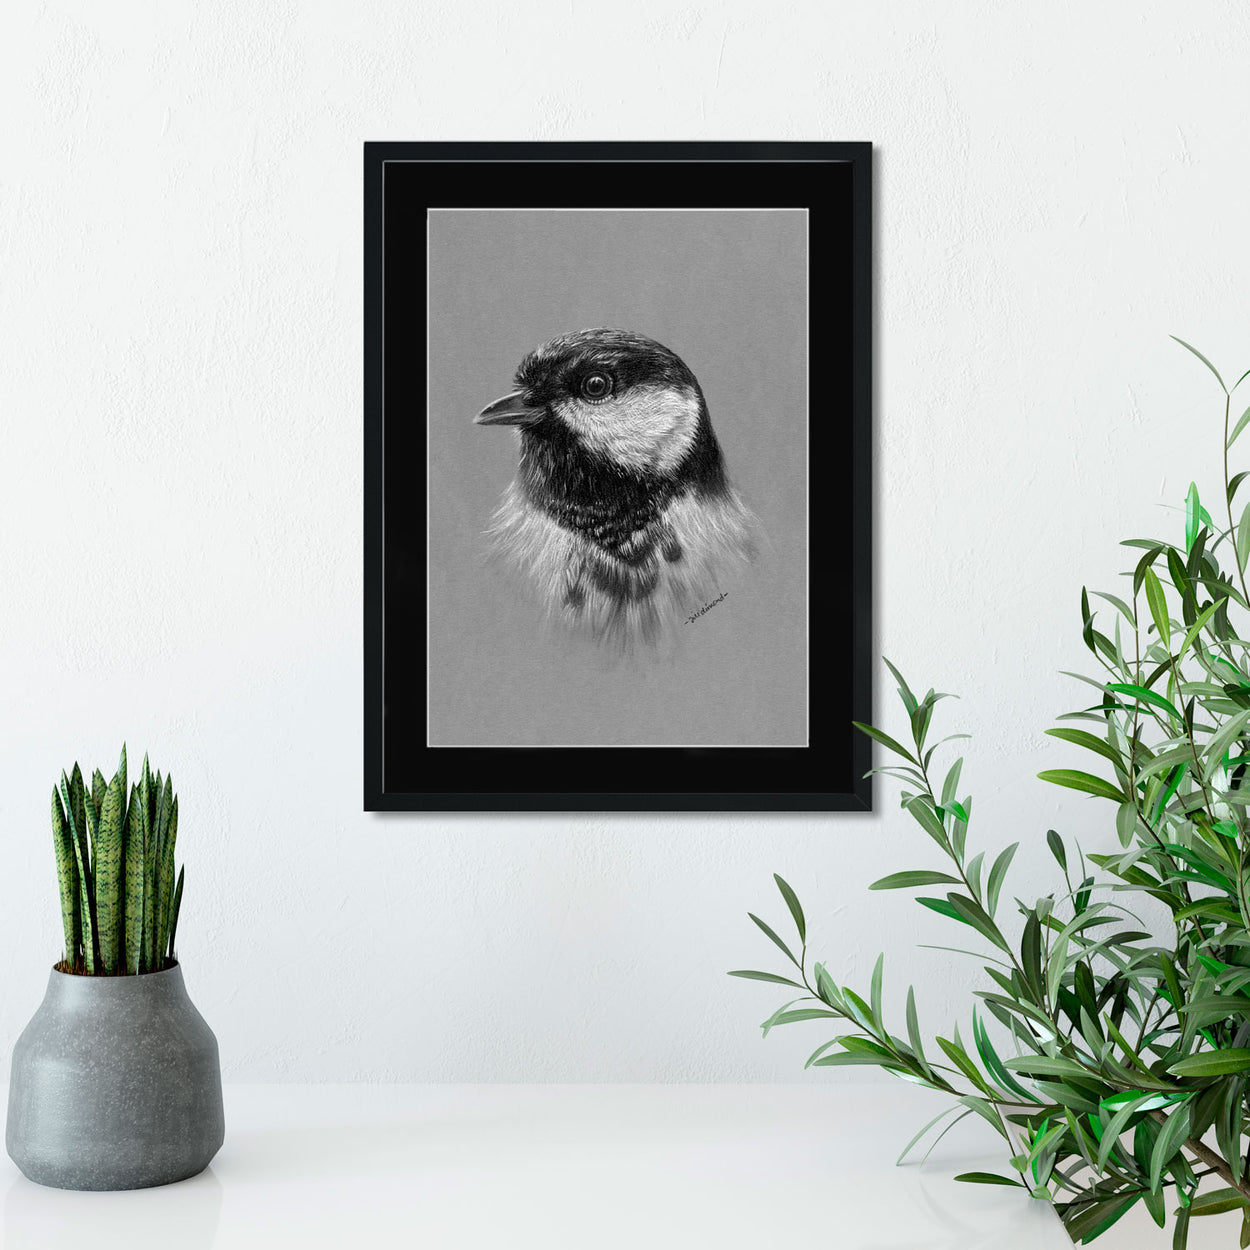 Great Tit Drawing on Wall - The Thriving Wild